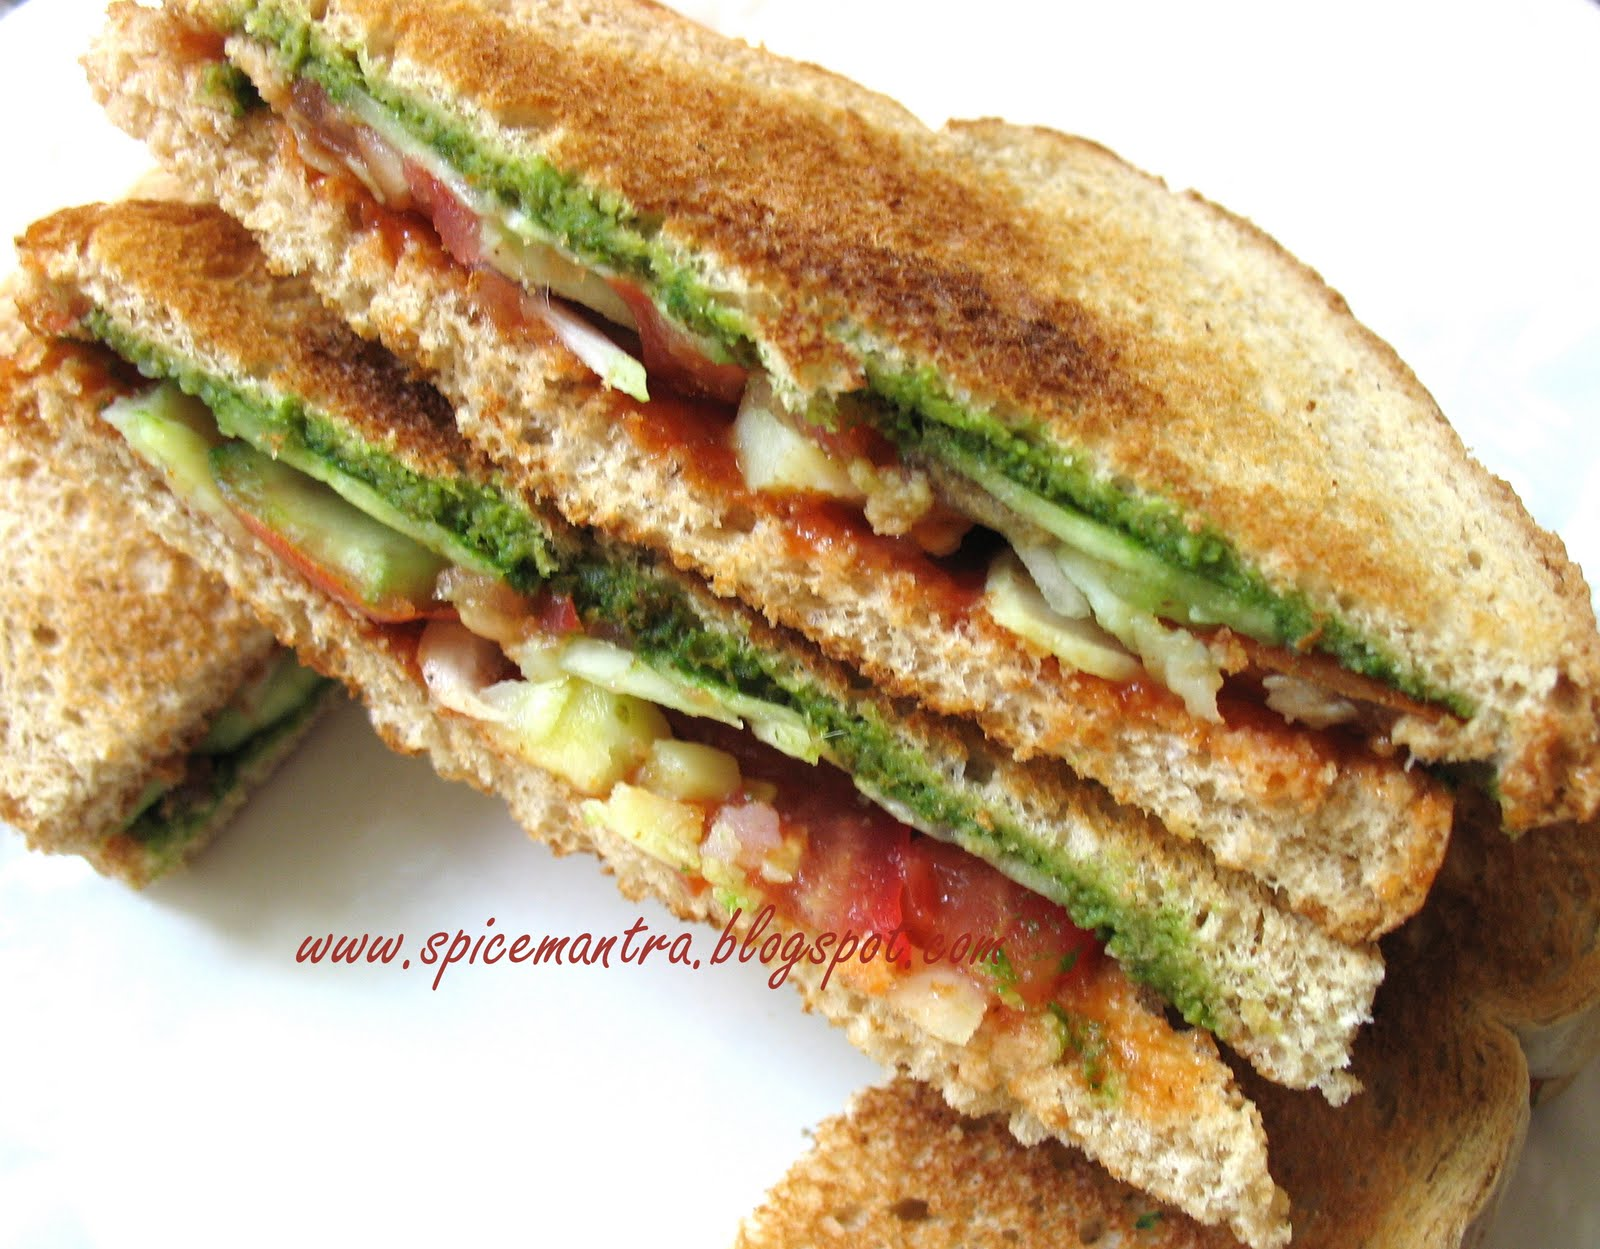 ... *: Indian version of Vegetable/ Vegan Toast Sandwich and an Award